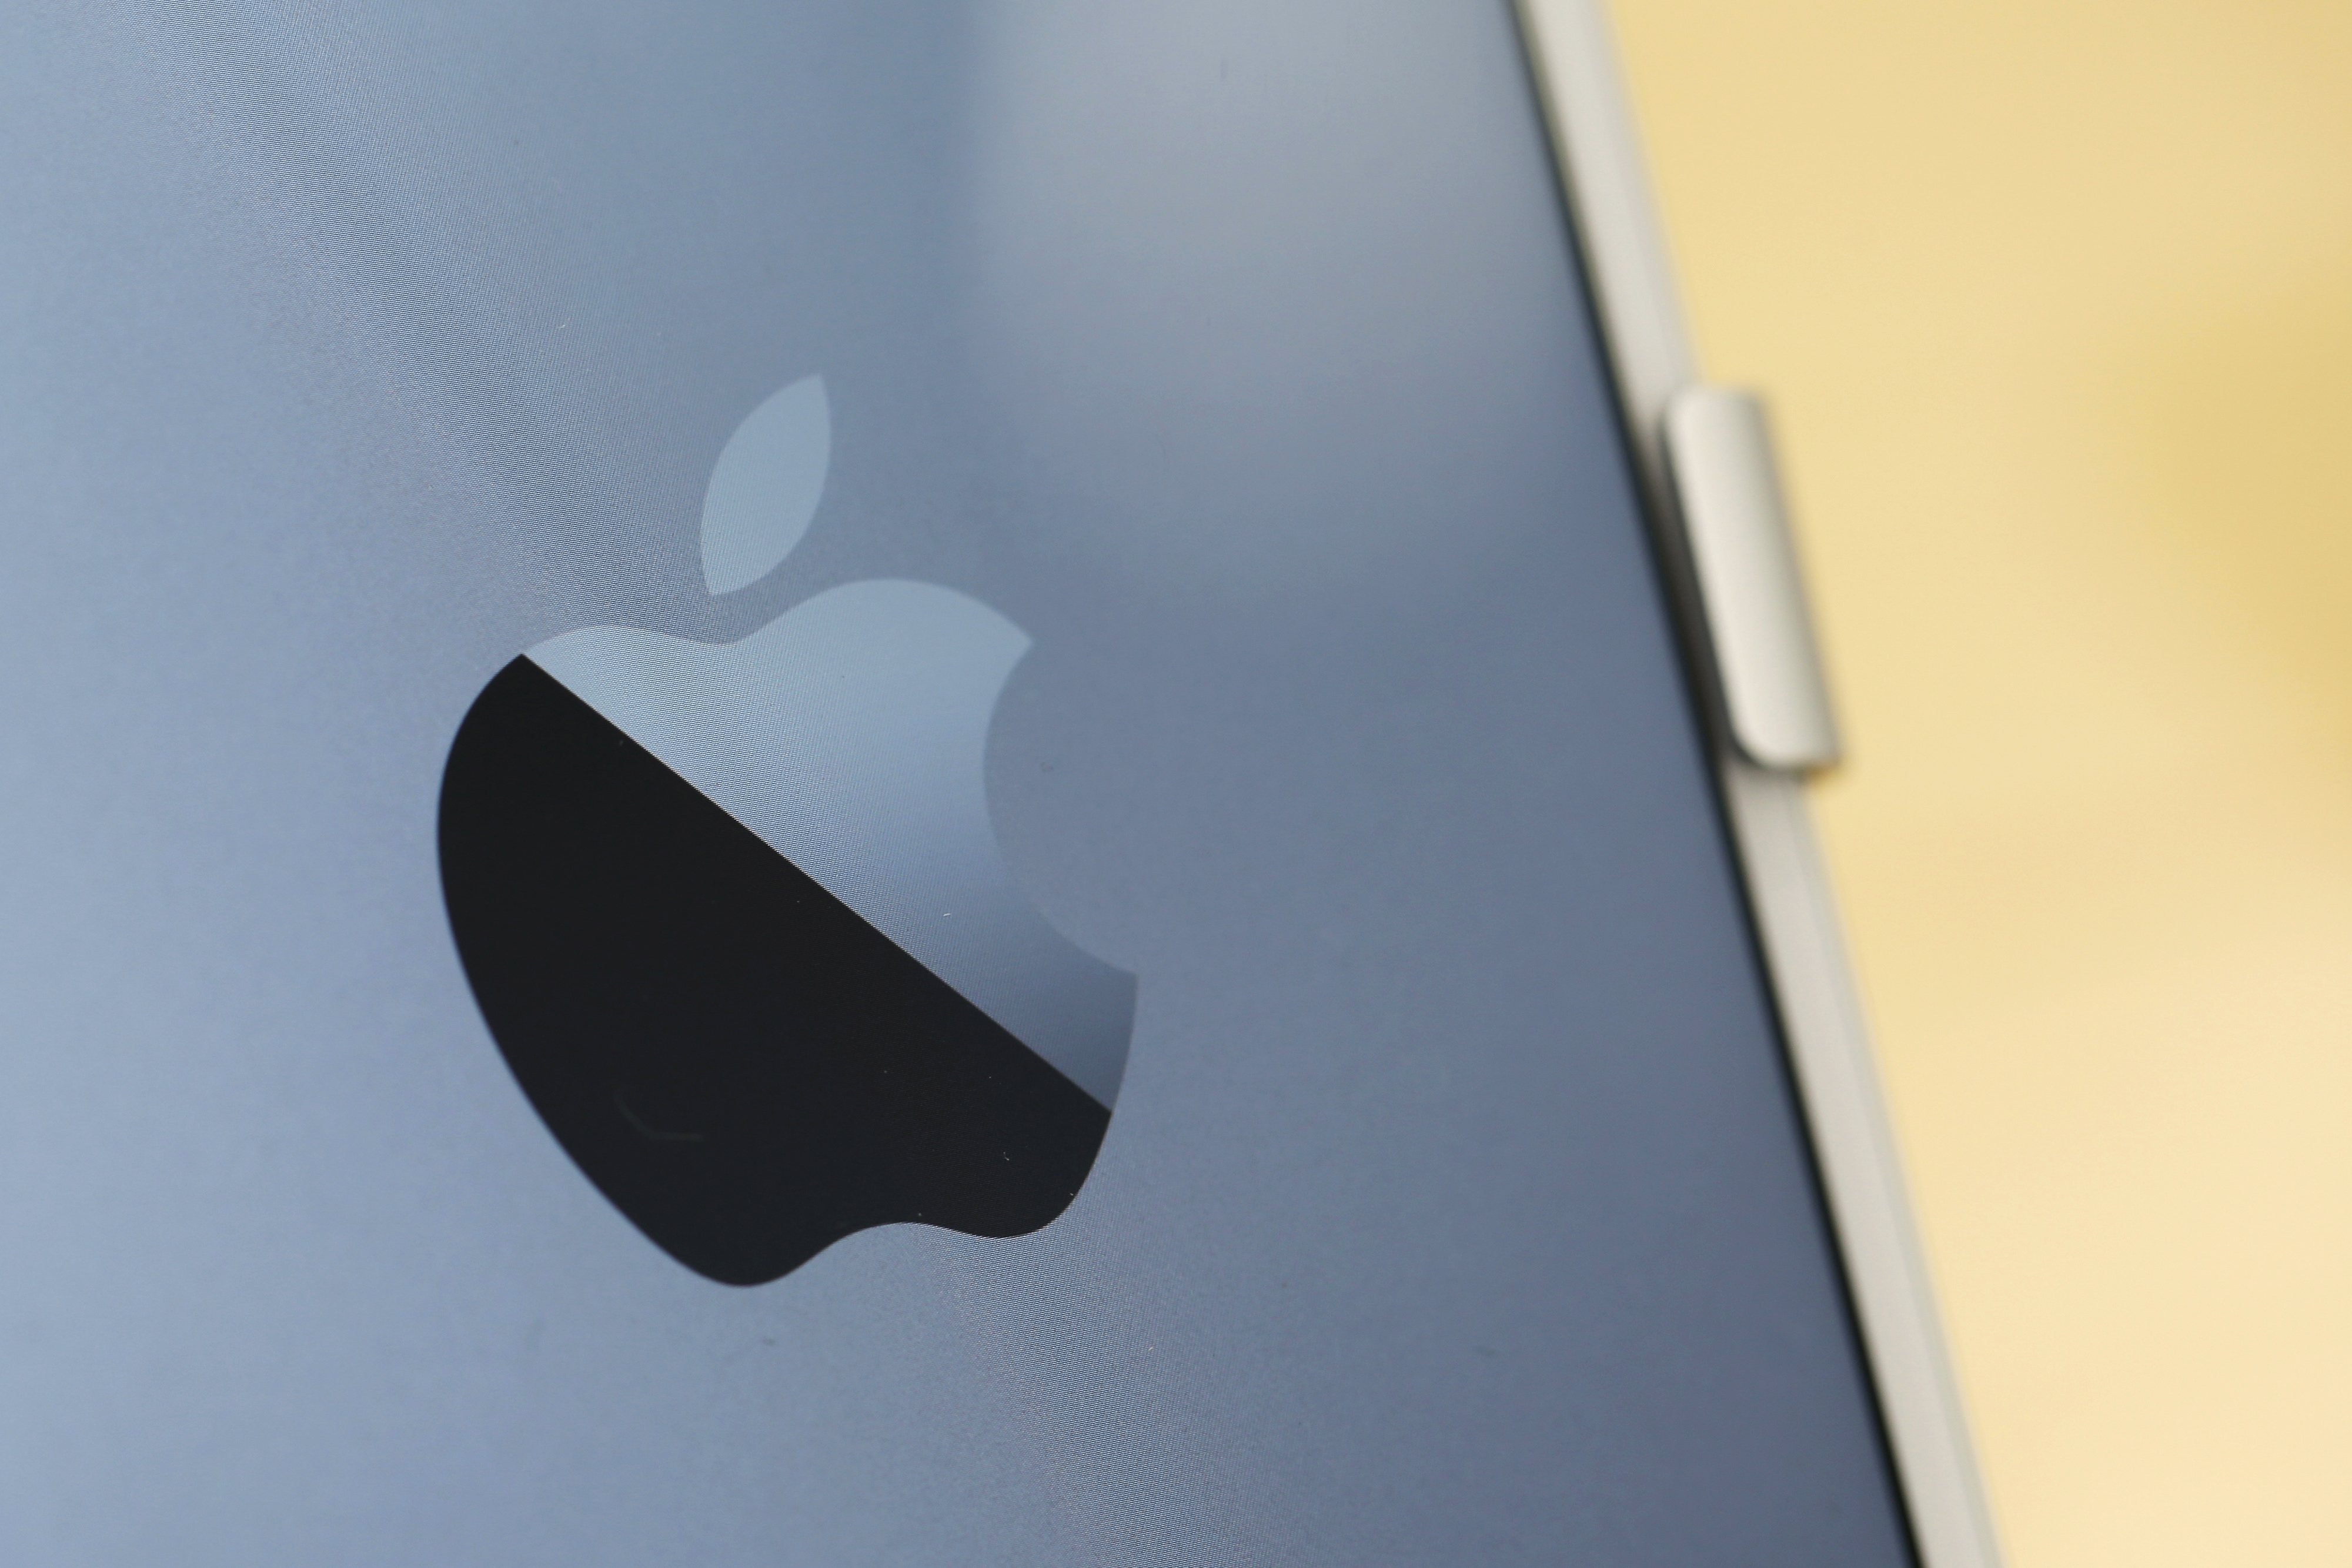 An Apple Inc. logo is displayed on the company's iPhone 6 Plus during the sales launch of the iPhone 6 and iPhone 6 Plus on Sept. 19, 2014.